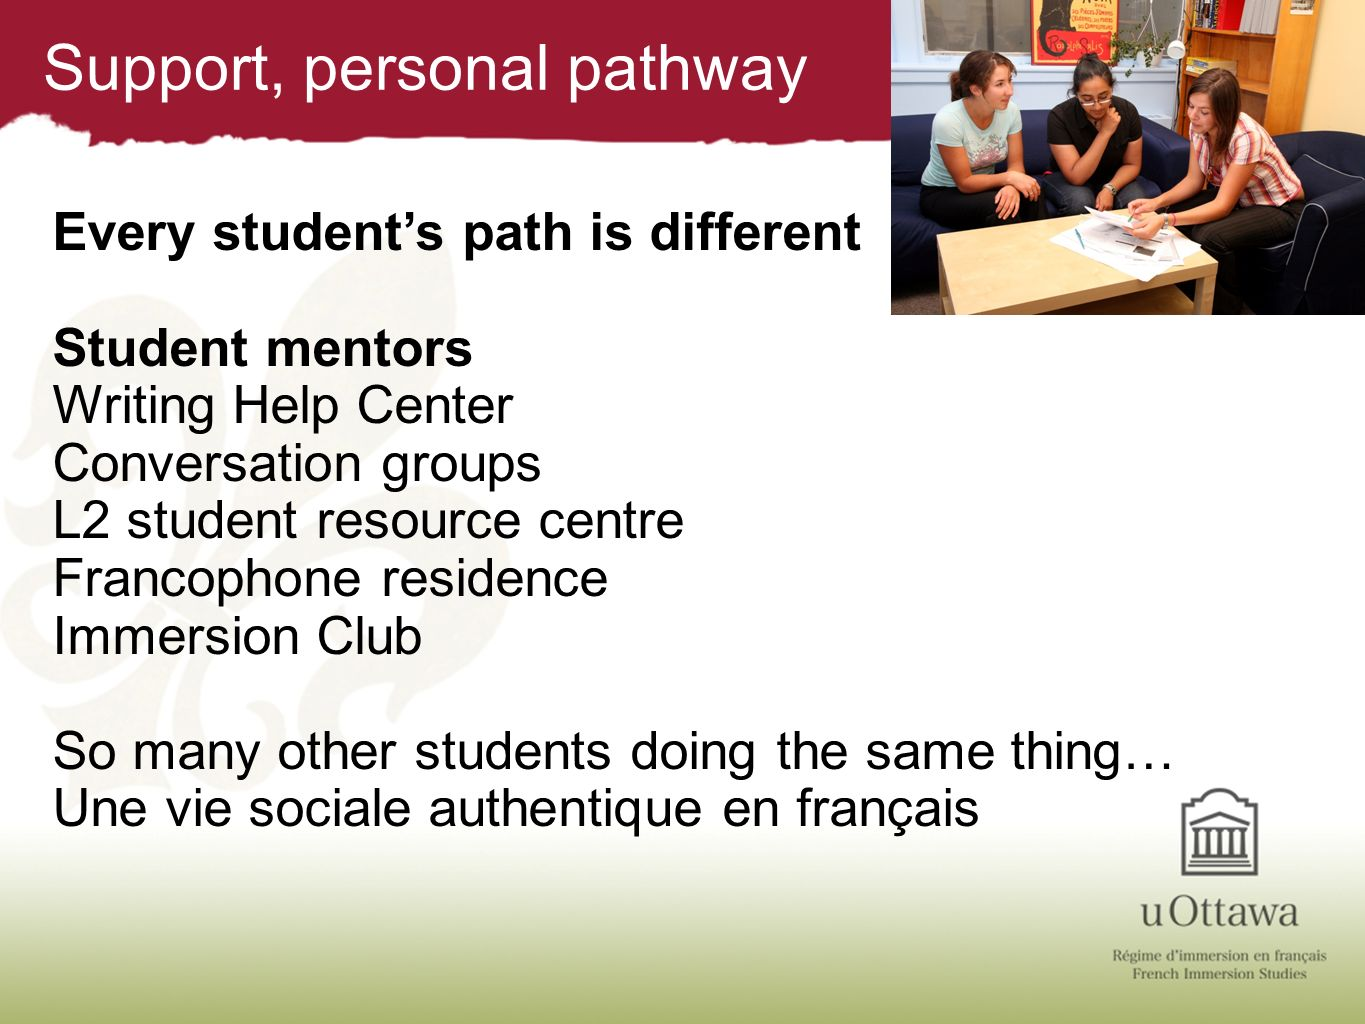 Support, personal pathway